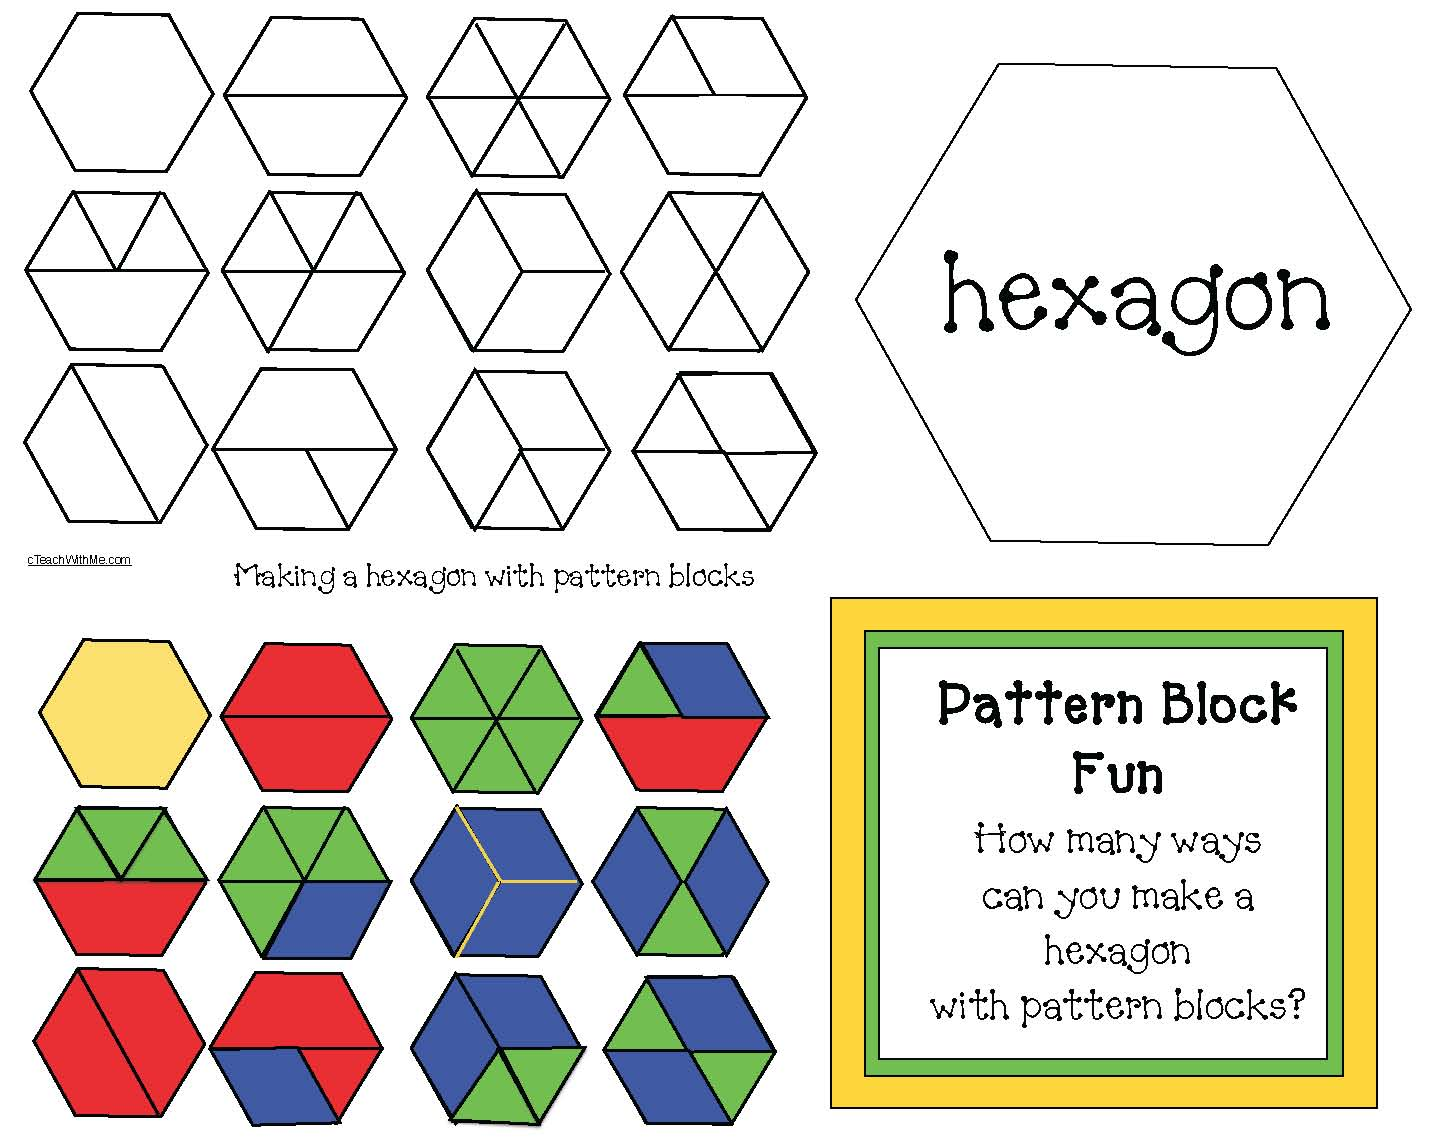 pattern blocks, pattern block stickers, trapezoid pattern blocks, trapezoid activities, pattern block templates,pattern block activities, hexagon activities, hexagon posters, pattern block posters, pattern block worksheets, pattern block numbers, pattern block letters, pattern block games, pattern block mats, 20 free pattern block mats, fractions with pattern blocks, pattern block pattern cards, pattern block alphabet cards, pattern block number cards, pattern block posters, pattern block math activities, shape activities, shape posters, traceable pattern blocks, pattern block templates